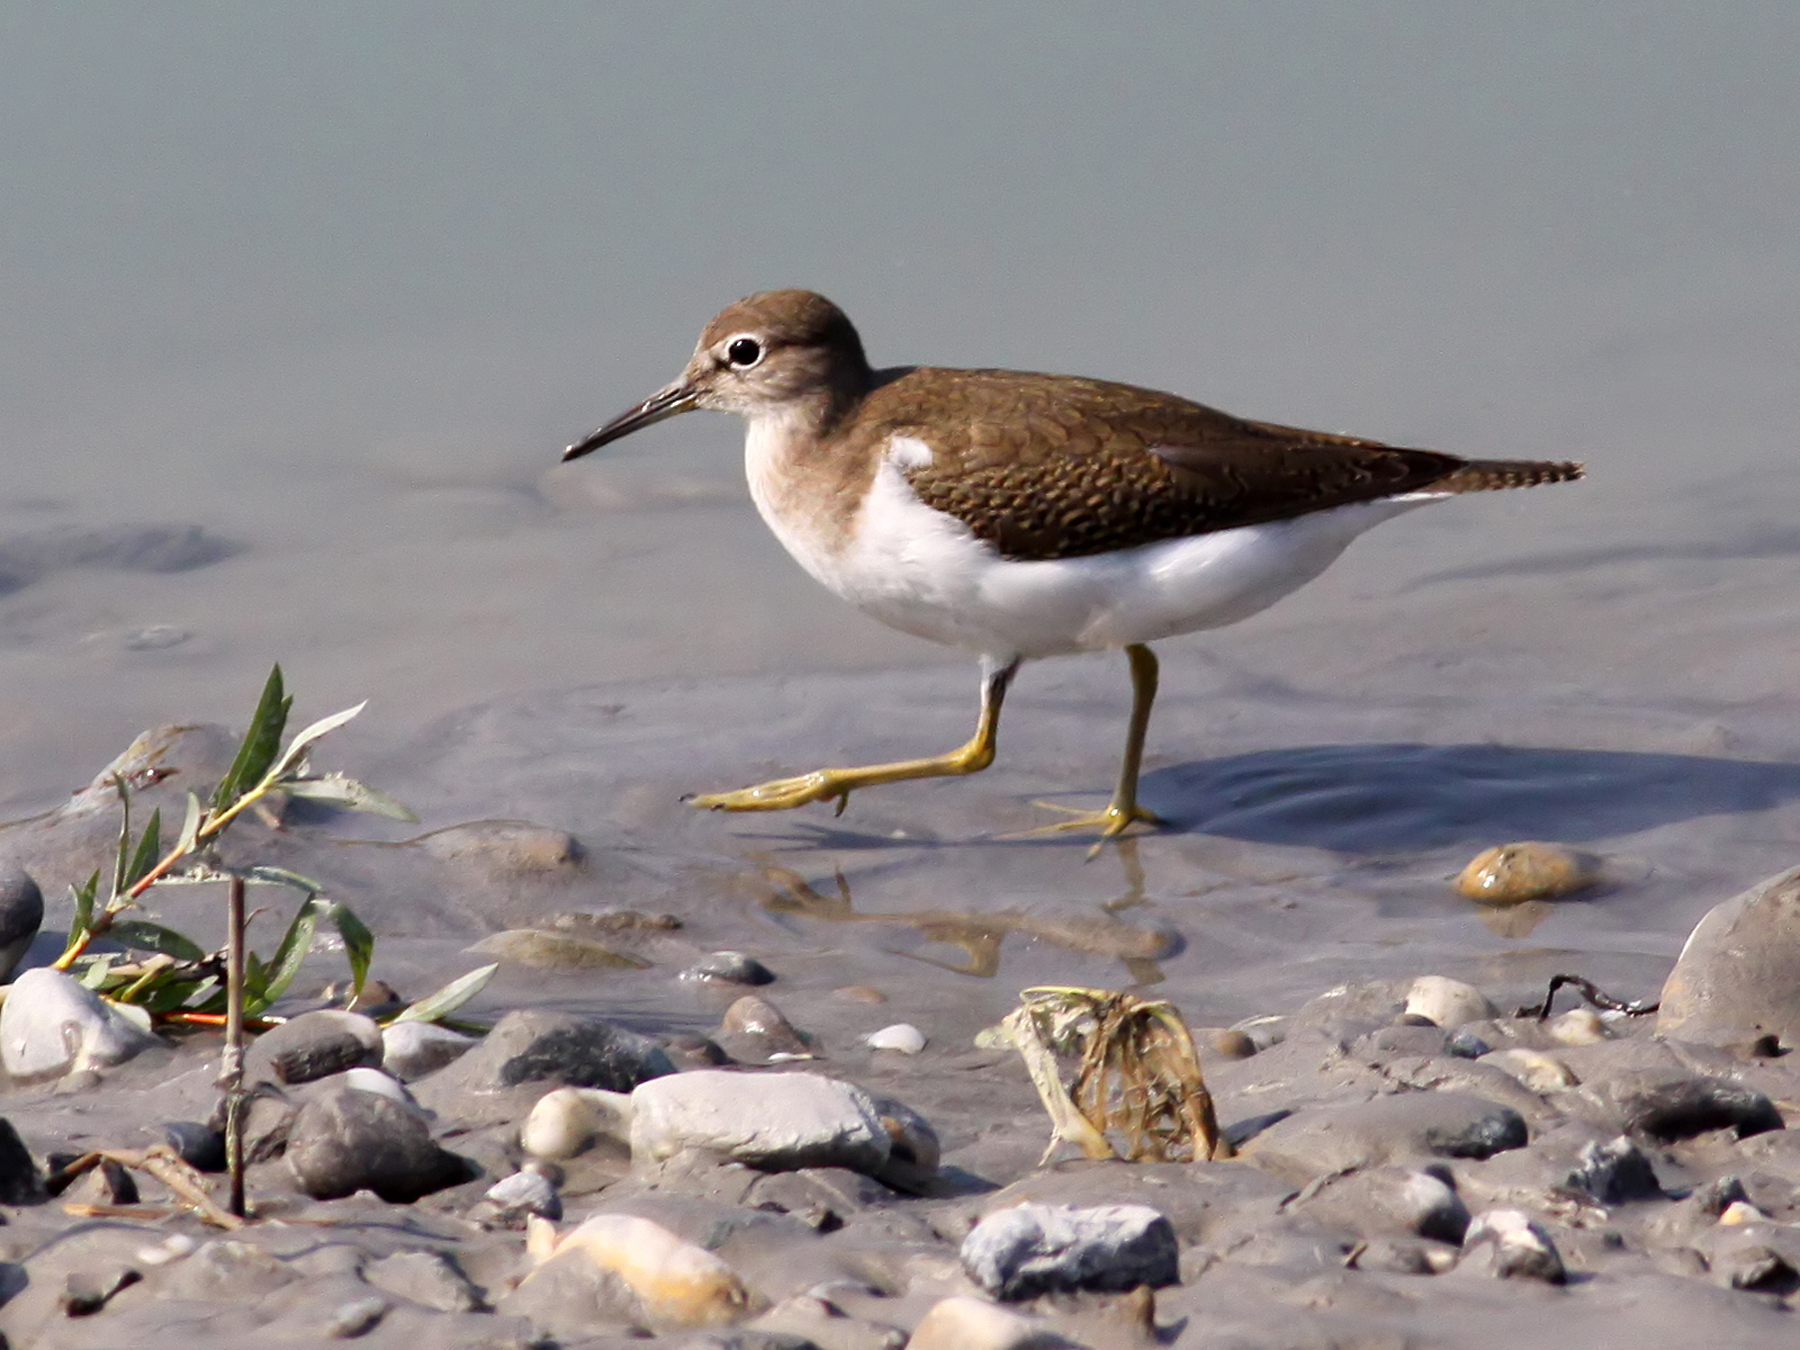 File:Sandpiper (Actitis hypoleucos) (23).jpg - Wikimedia Commons: https://commons.wikimedia.org/wiki/File:Sandpiper_(Actitis...